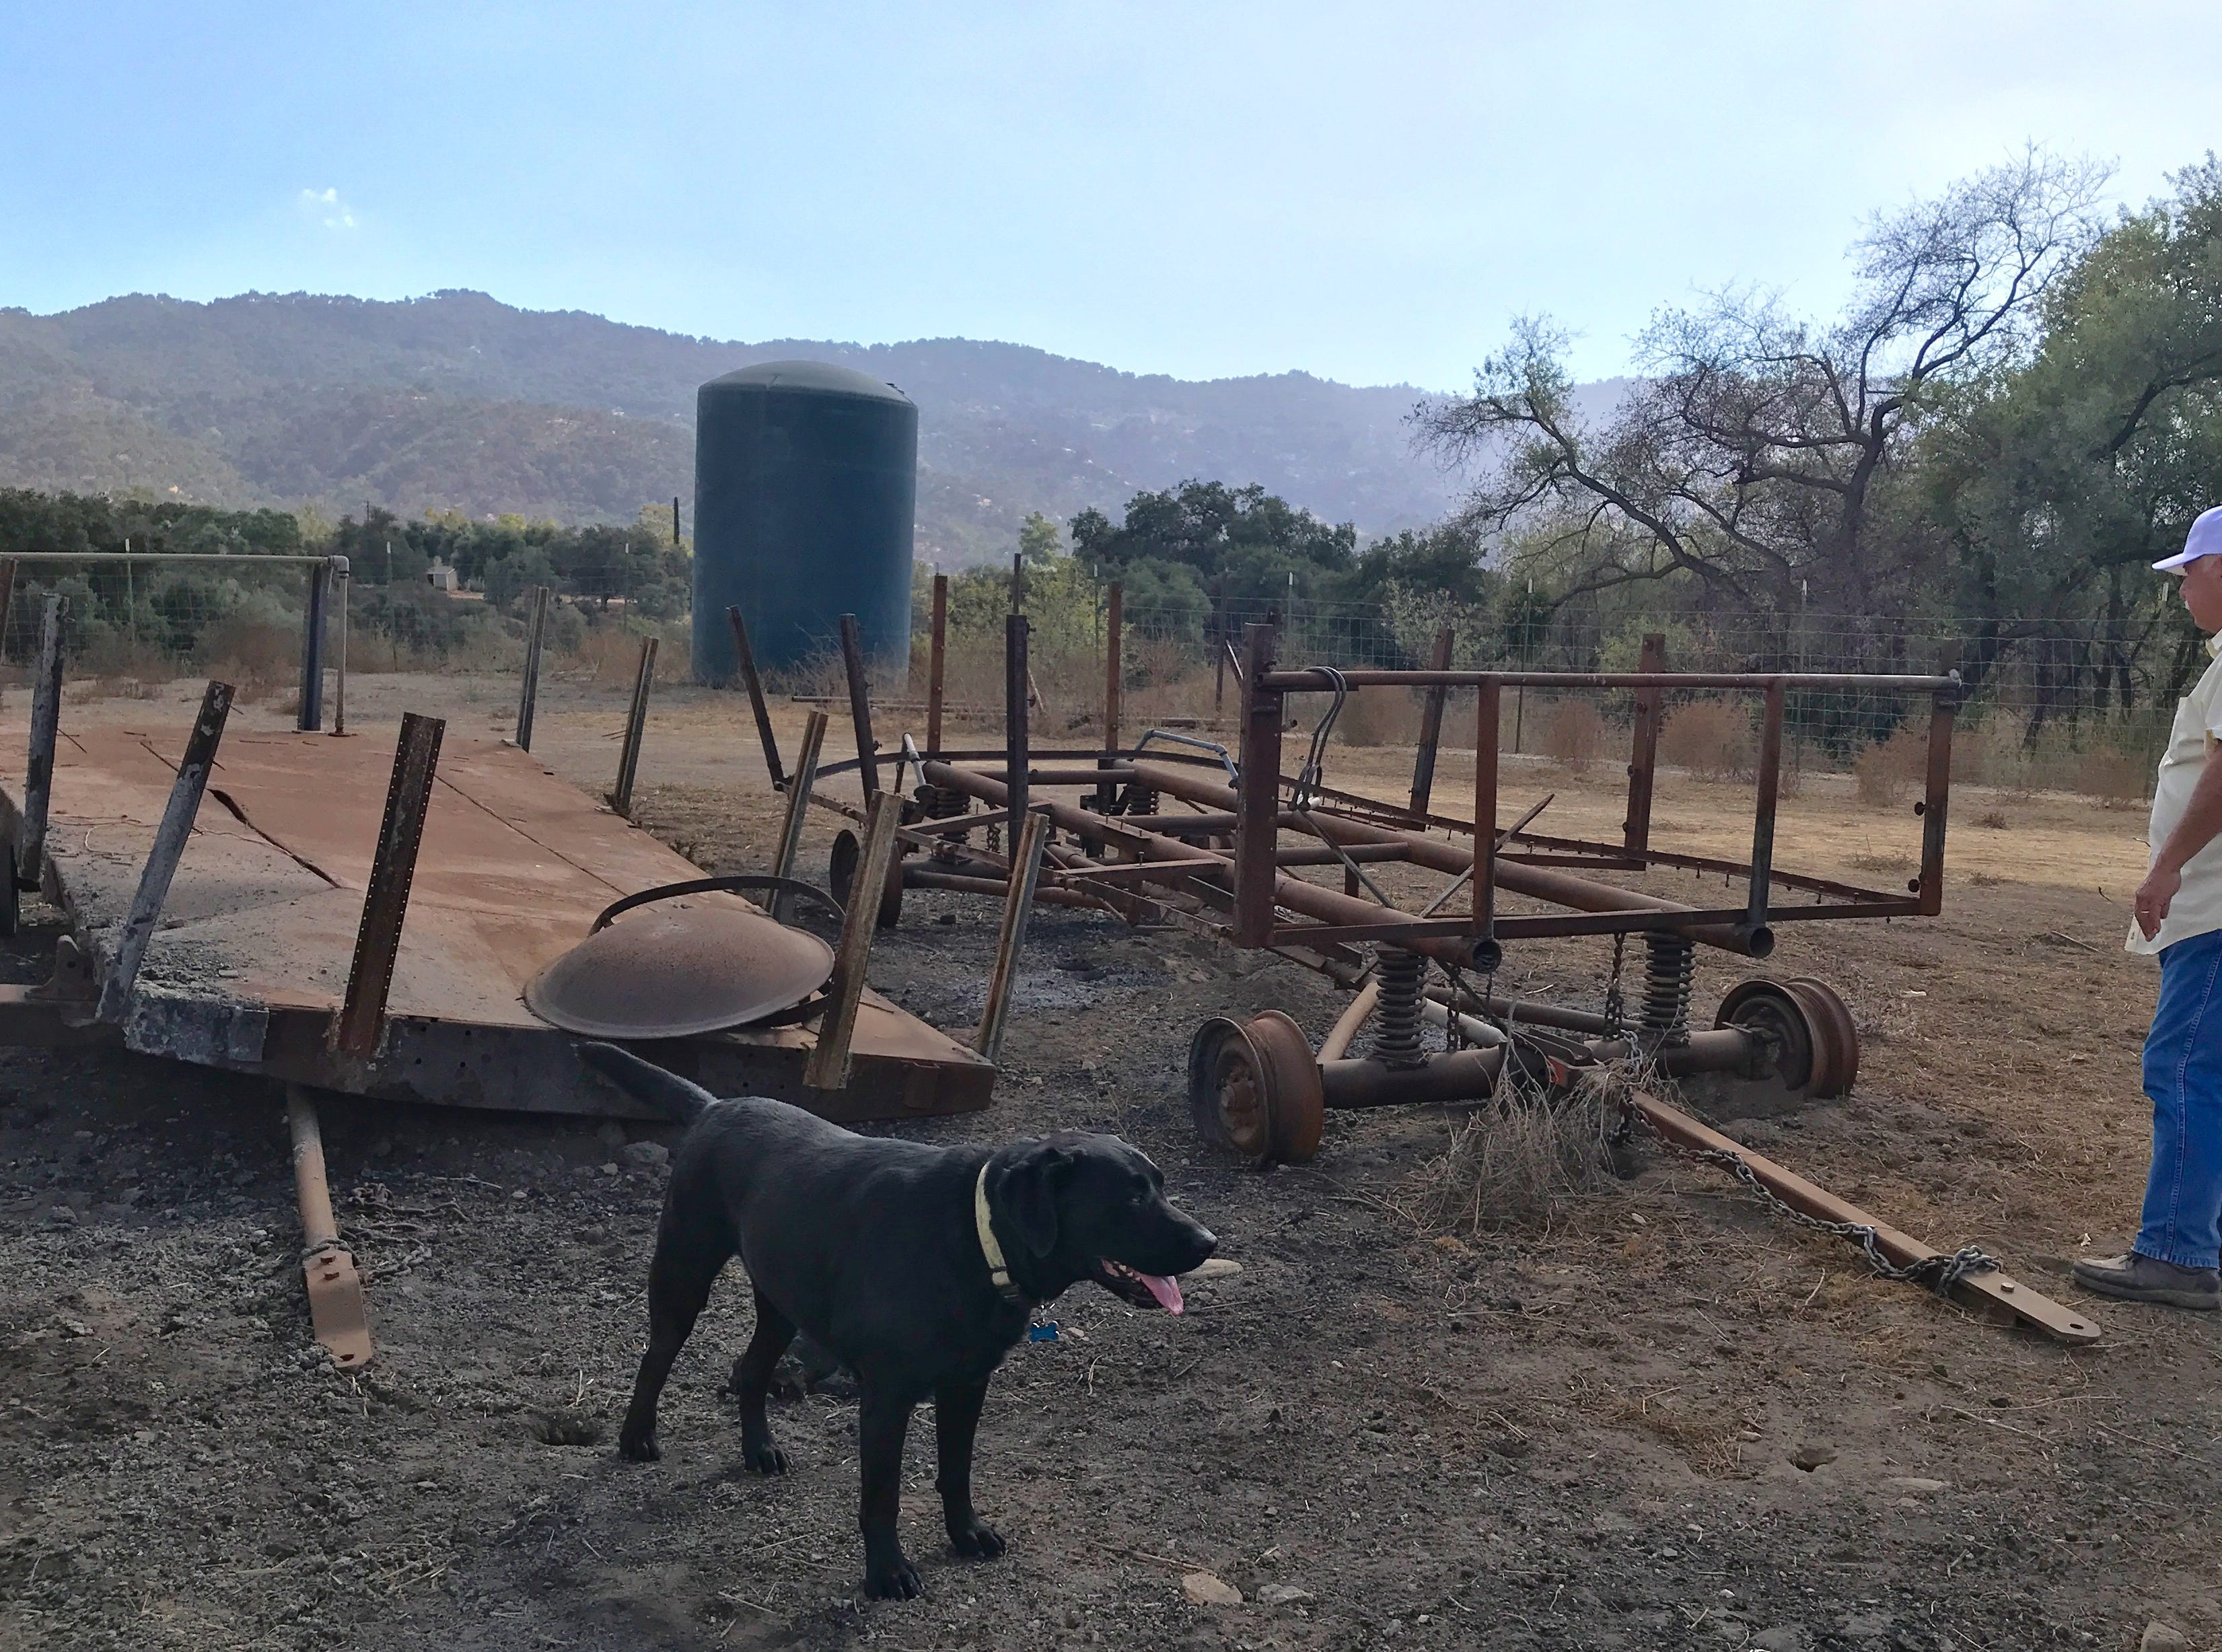 DeWayne Boccali and his dog Buster stand by the remains of two trailers used for the annual haunted hayride at Boccali's restaurant in Ojai. Because of damage caused by the Thomas Fire and the ongoing drought, the hayride will not take place this year.